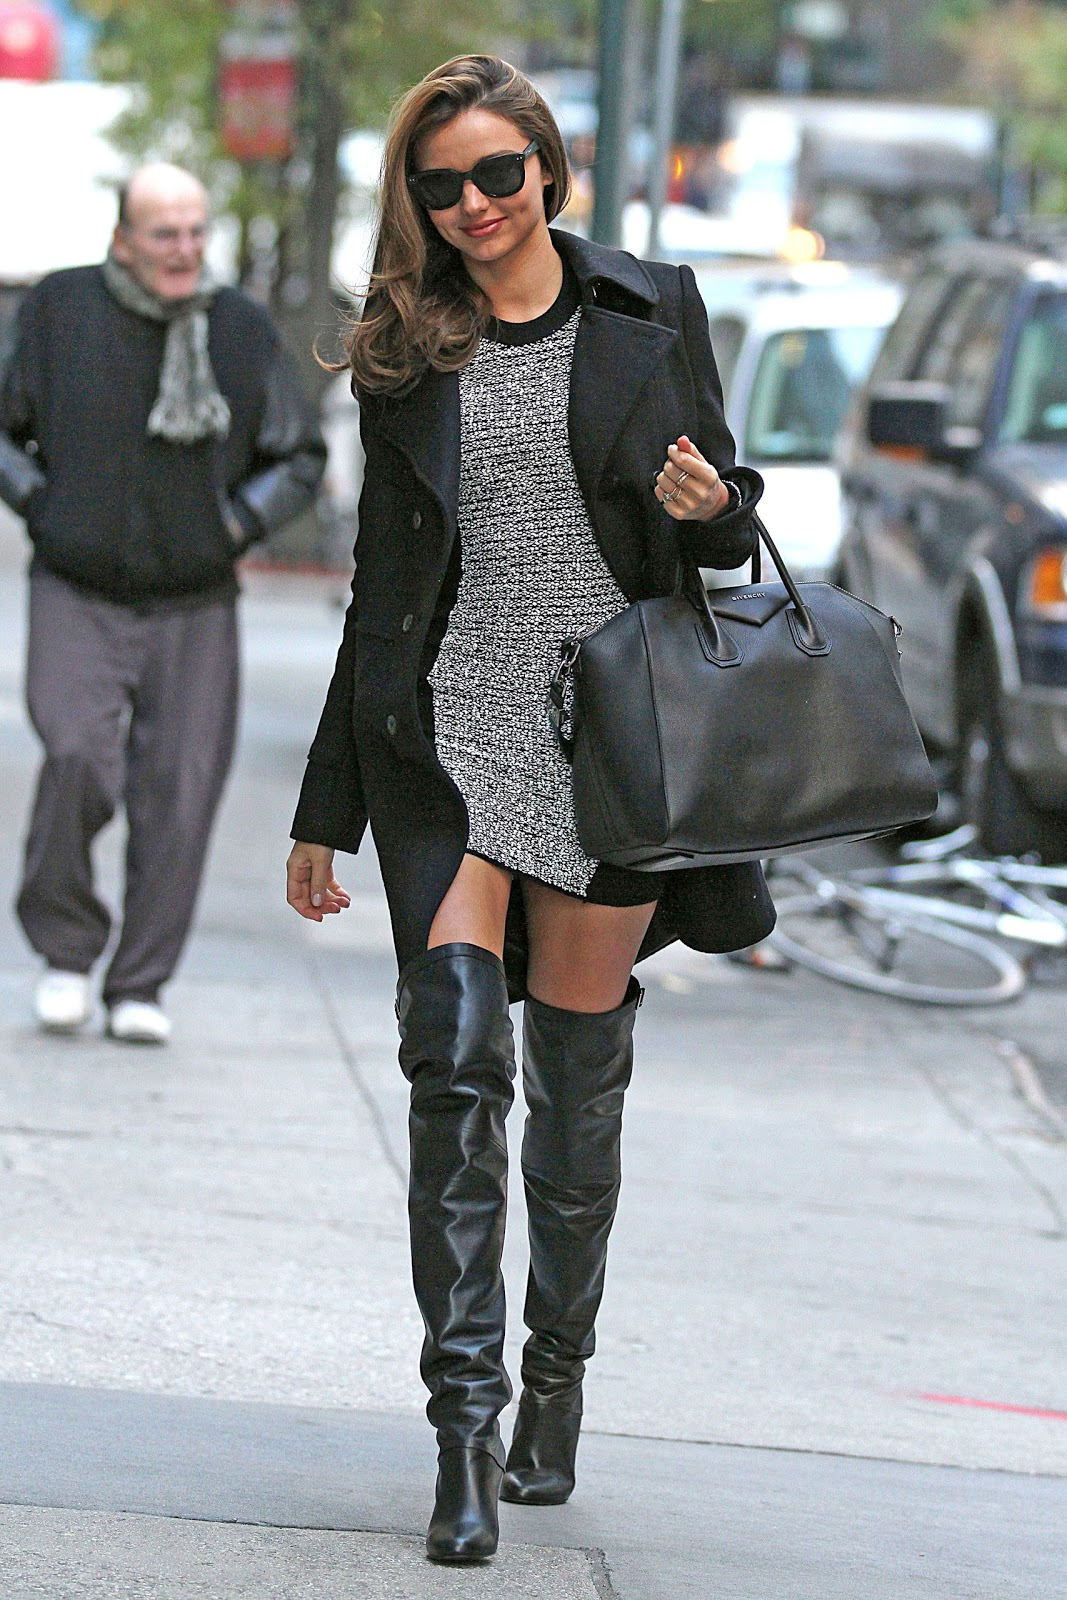 Top 10 celebrities in thigh high boots | GlamorousHeels.com